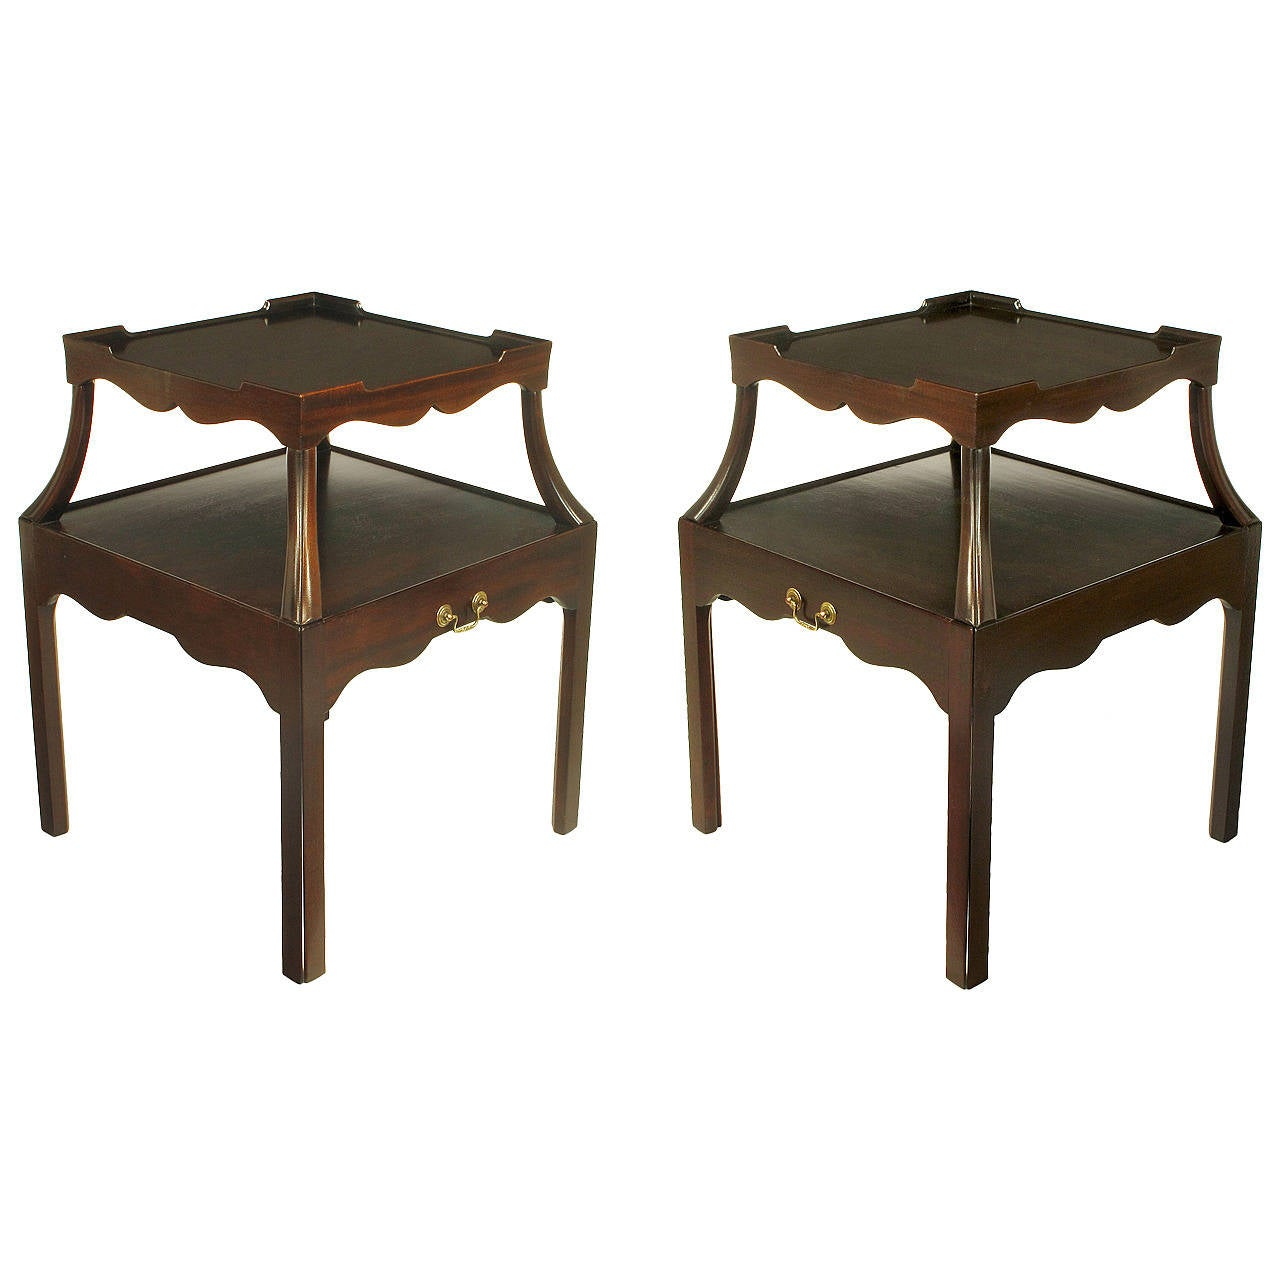 Pair of 1940s Two-Tier Mahogany End Tables with Extensible Nesting Top 1